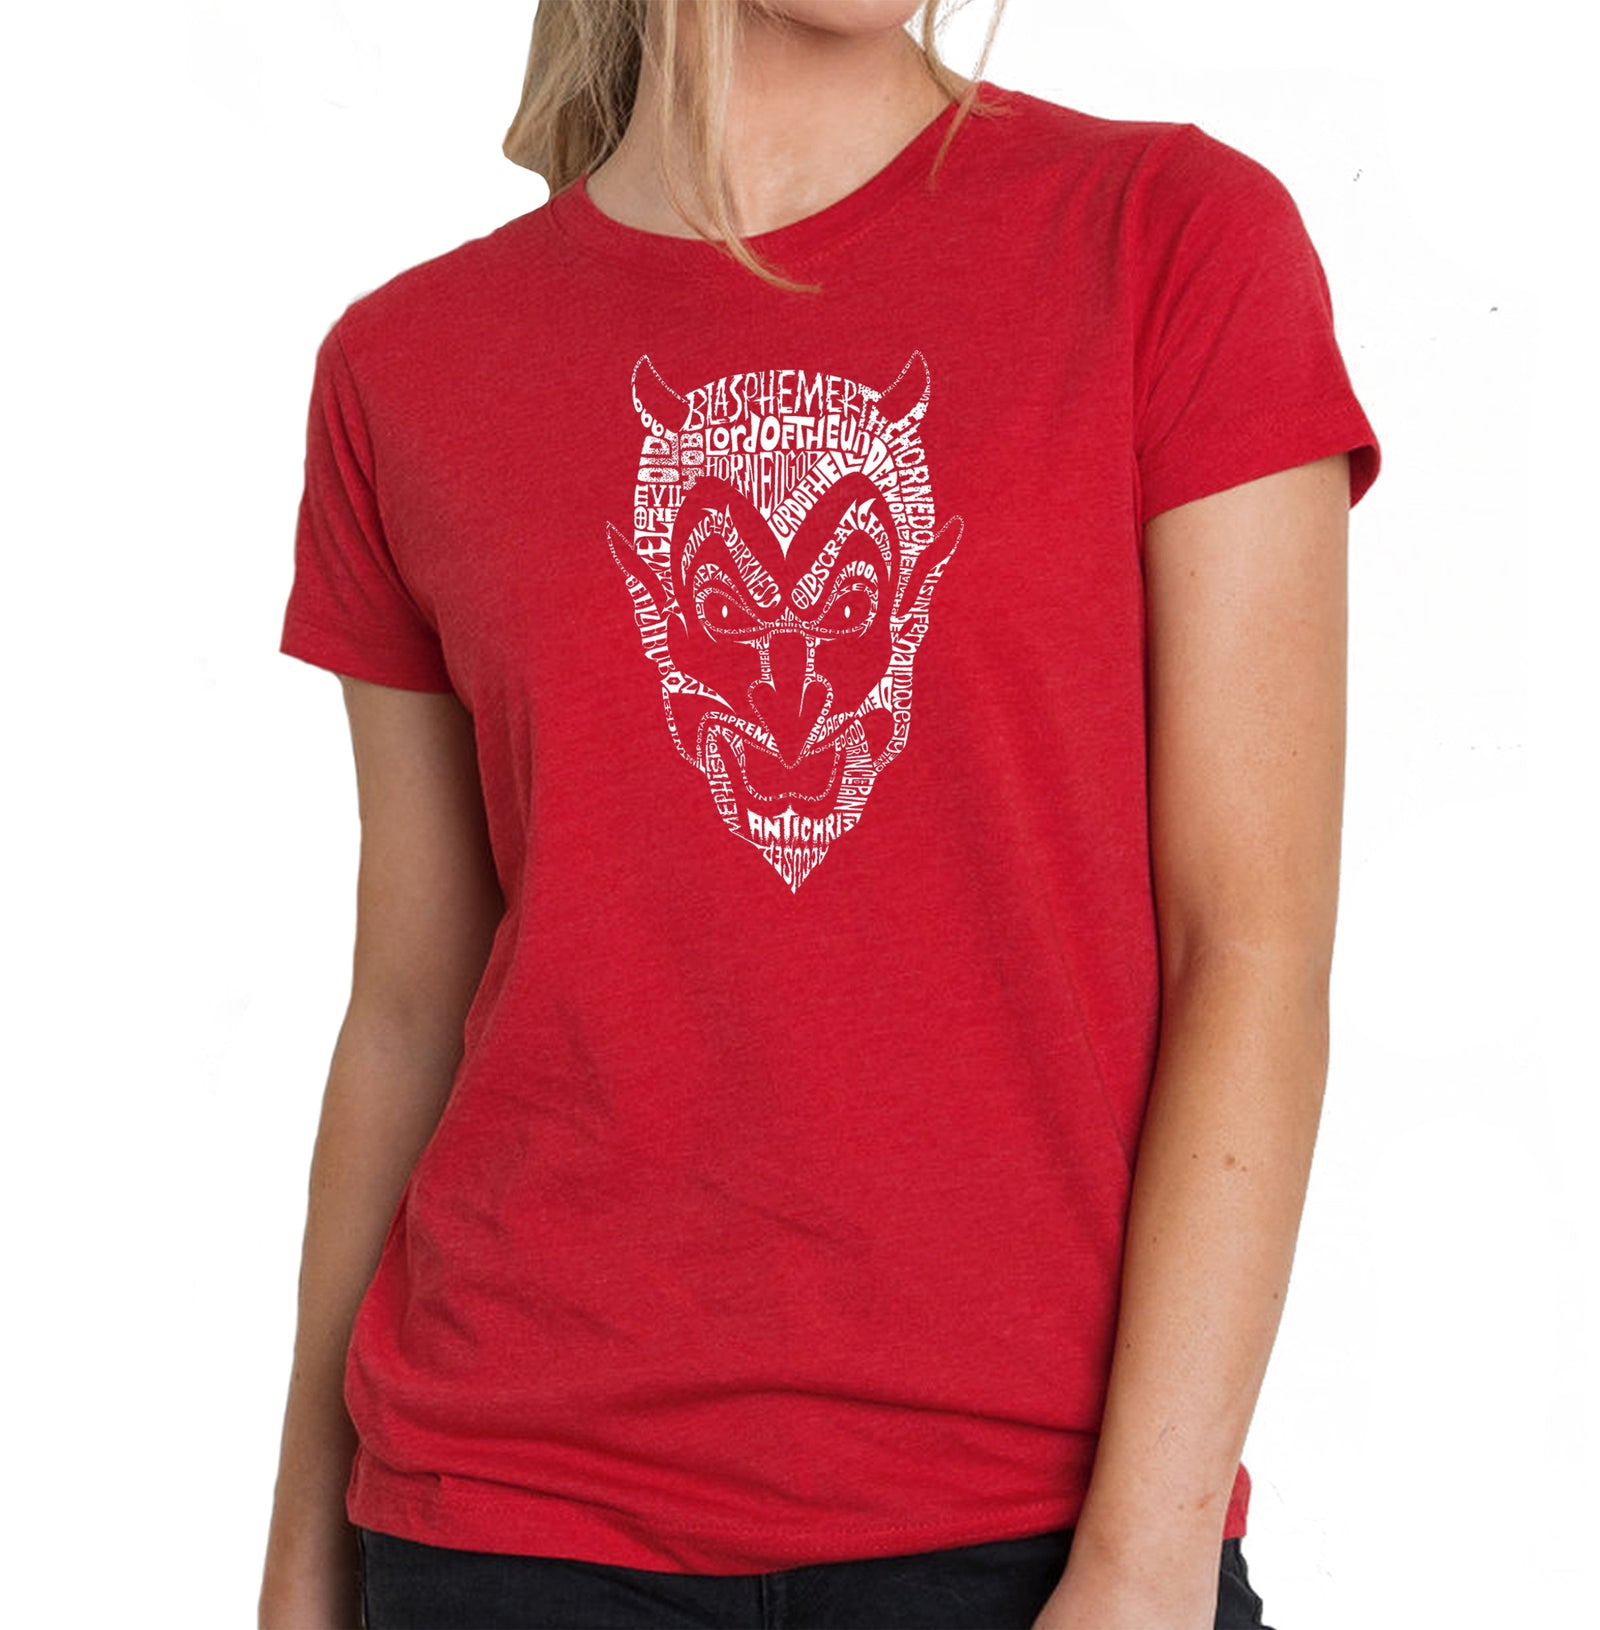 Women's Premium Blend Word Art T-shirt - THE DEVIL'S NAMES